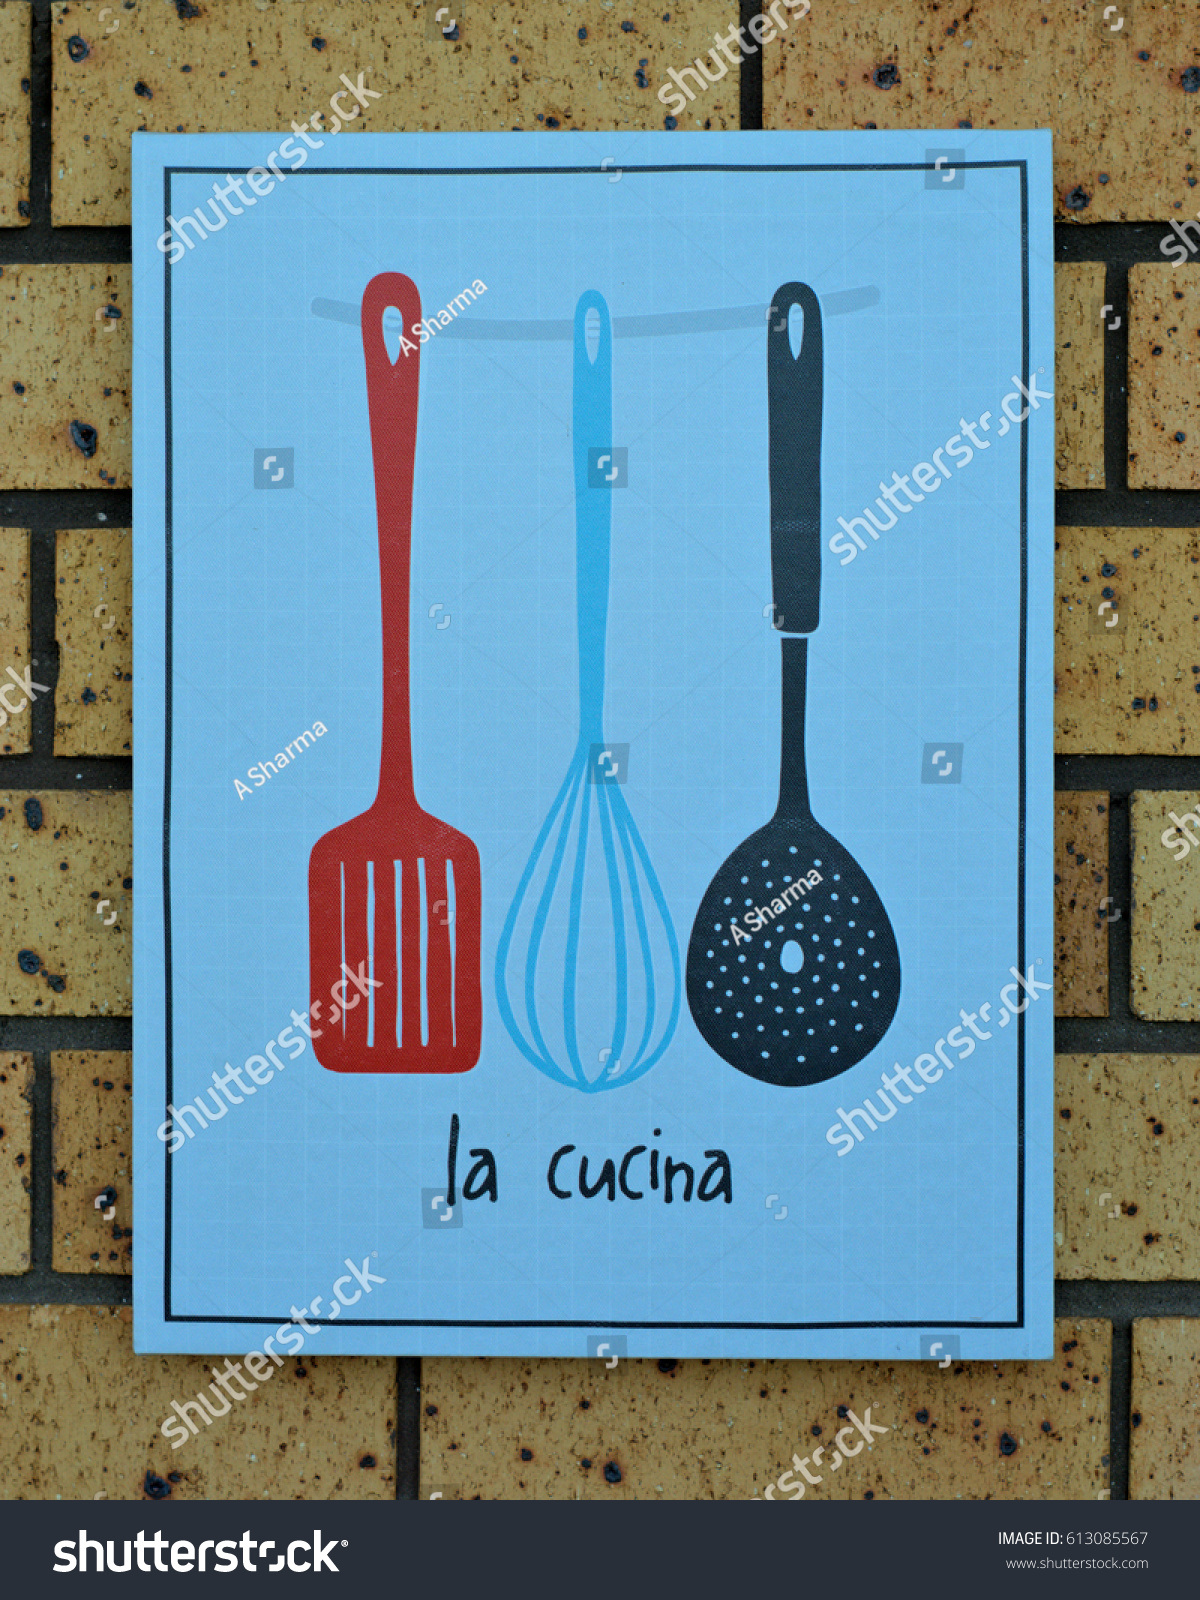 Cucina Kitchen Sign La Cucina Kitchen Sign Stock Photo Edit Now 613085567 Shutterstock